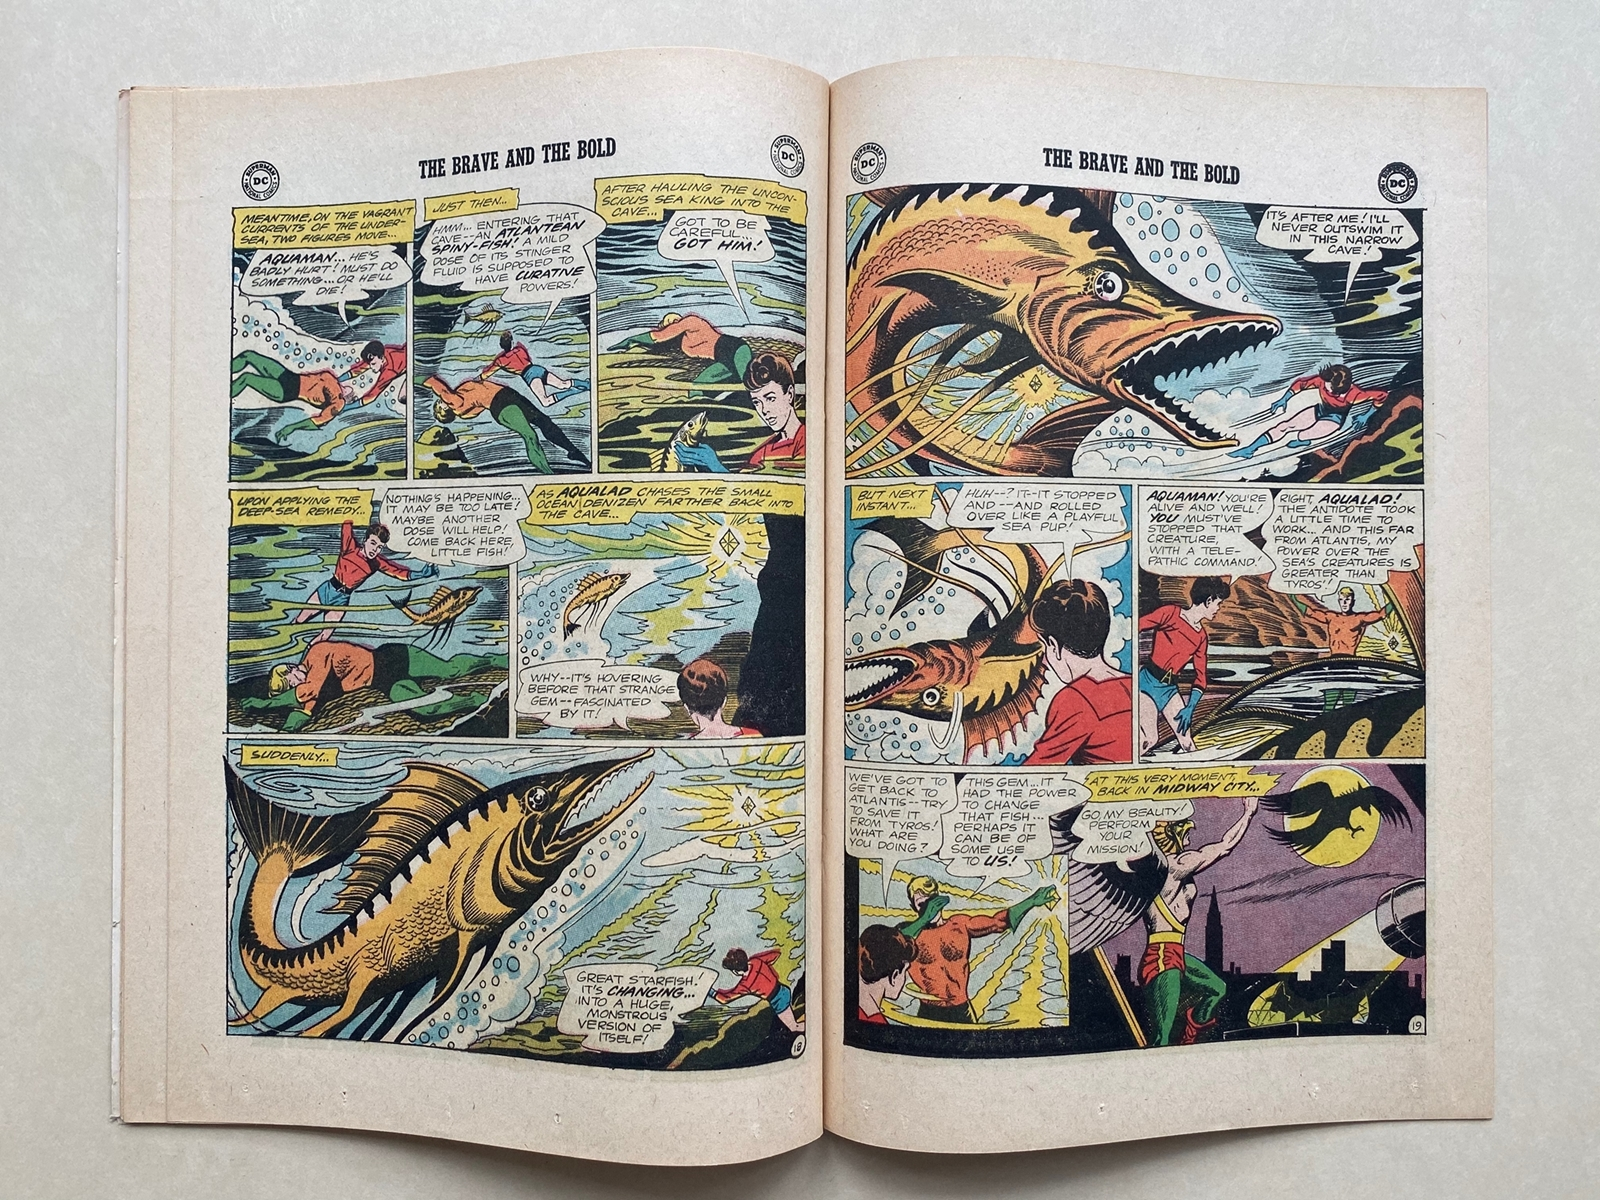 BRAVE & BOLD #51 - AQUAMAN & HAWKMAN - (1964 - DC) FN/VFN (Cents Copy) - Pre-dates Hawkman #1 - - Image 8 of 10